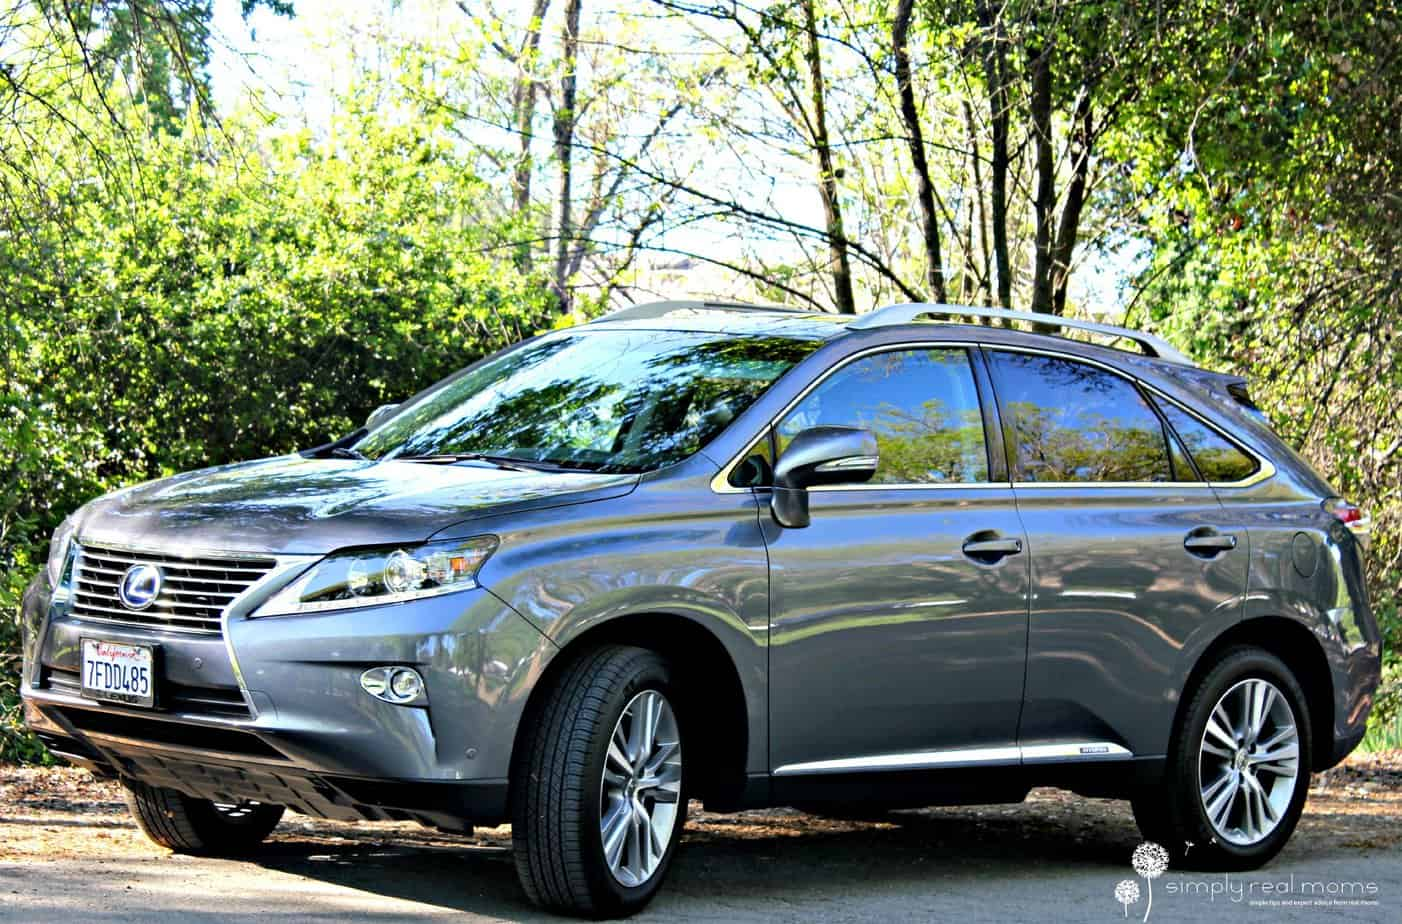 2015 Lexus RX 450H: Not Your Average Hybrid 1